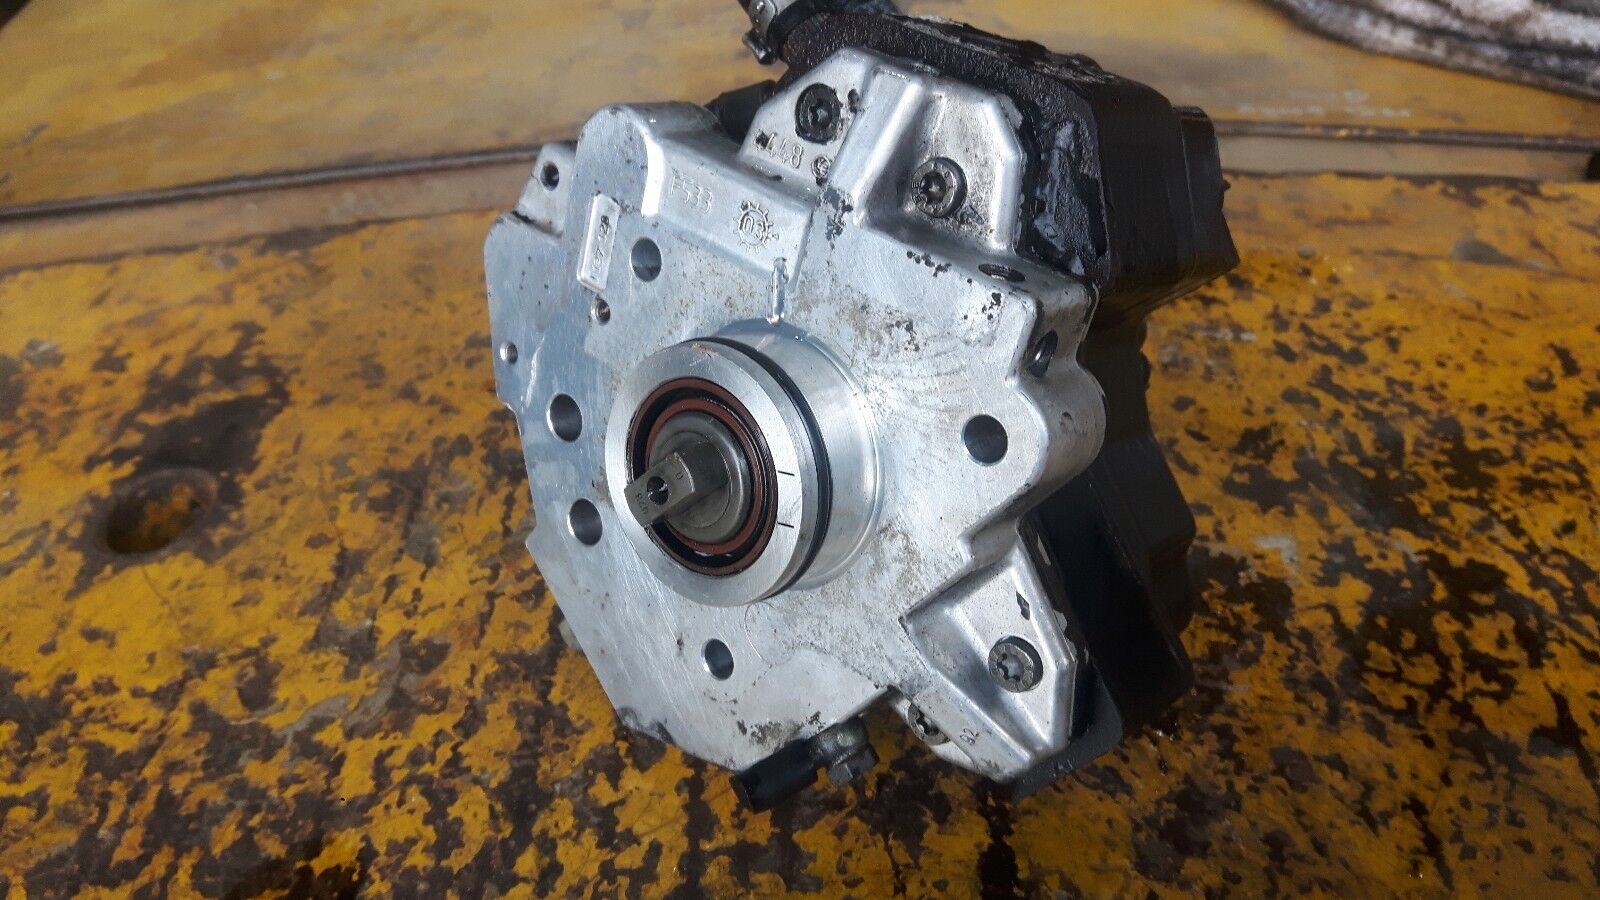 VOLVO S80 S60 V70 XC90 2.4D D5 BOSCH FUEL INJECTION PUMP 0445010043 8689590